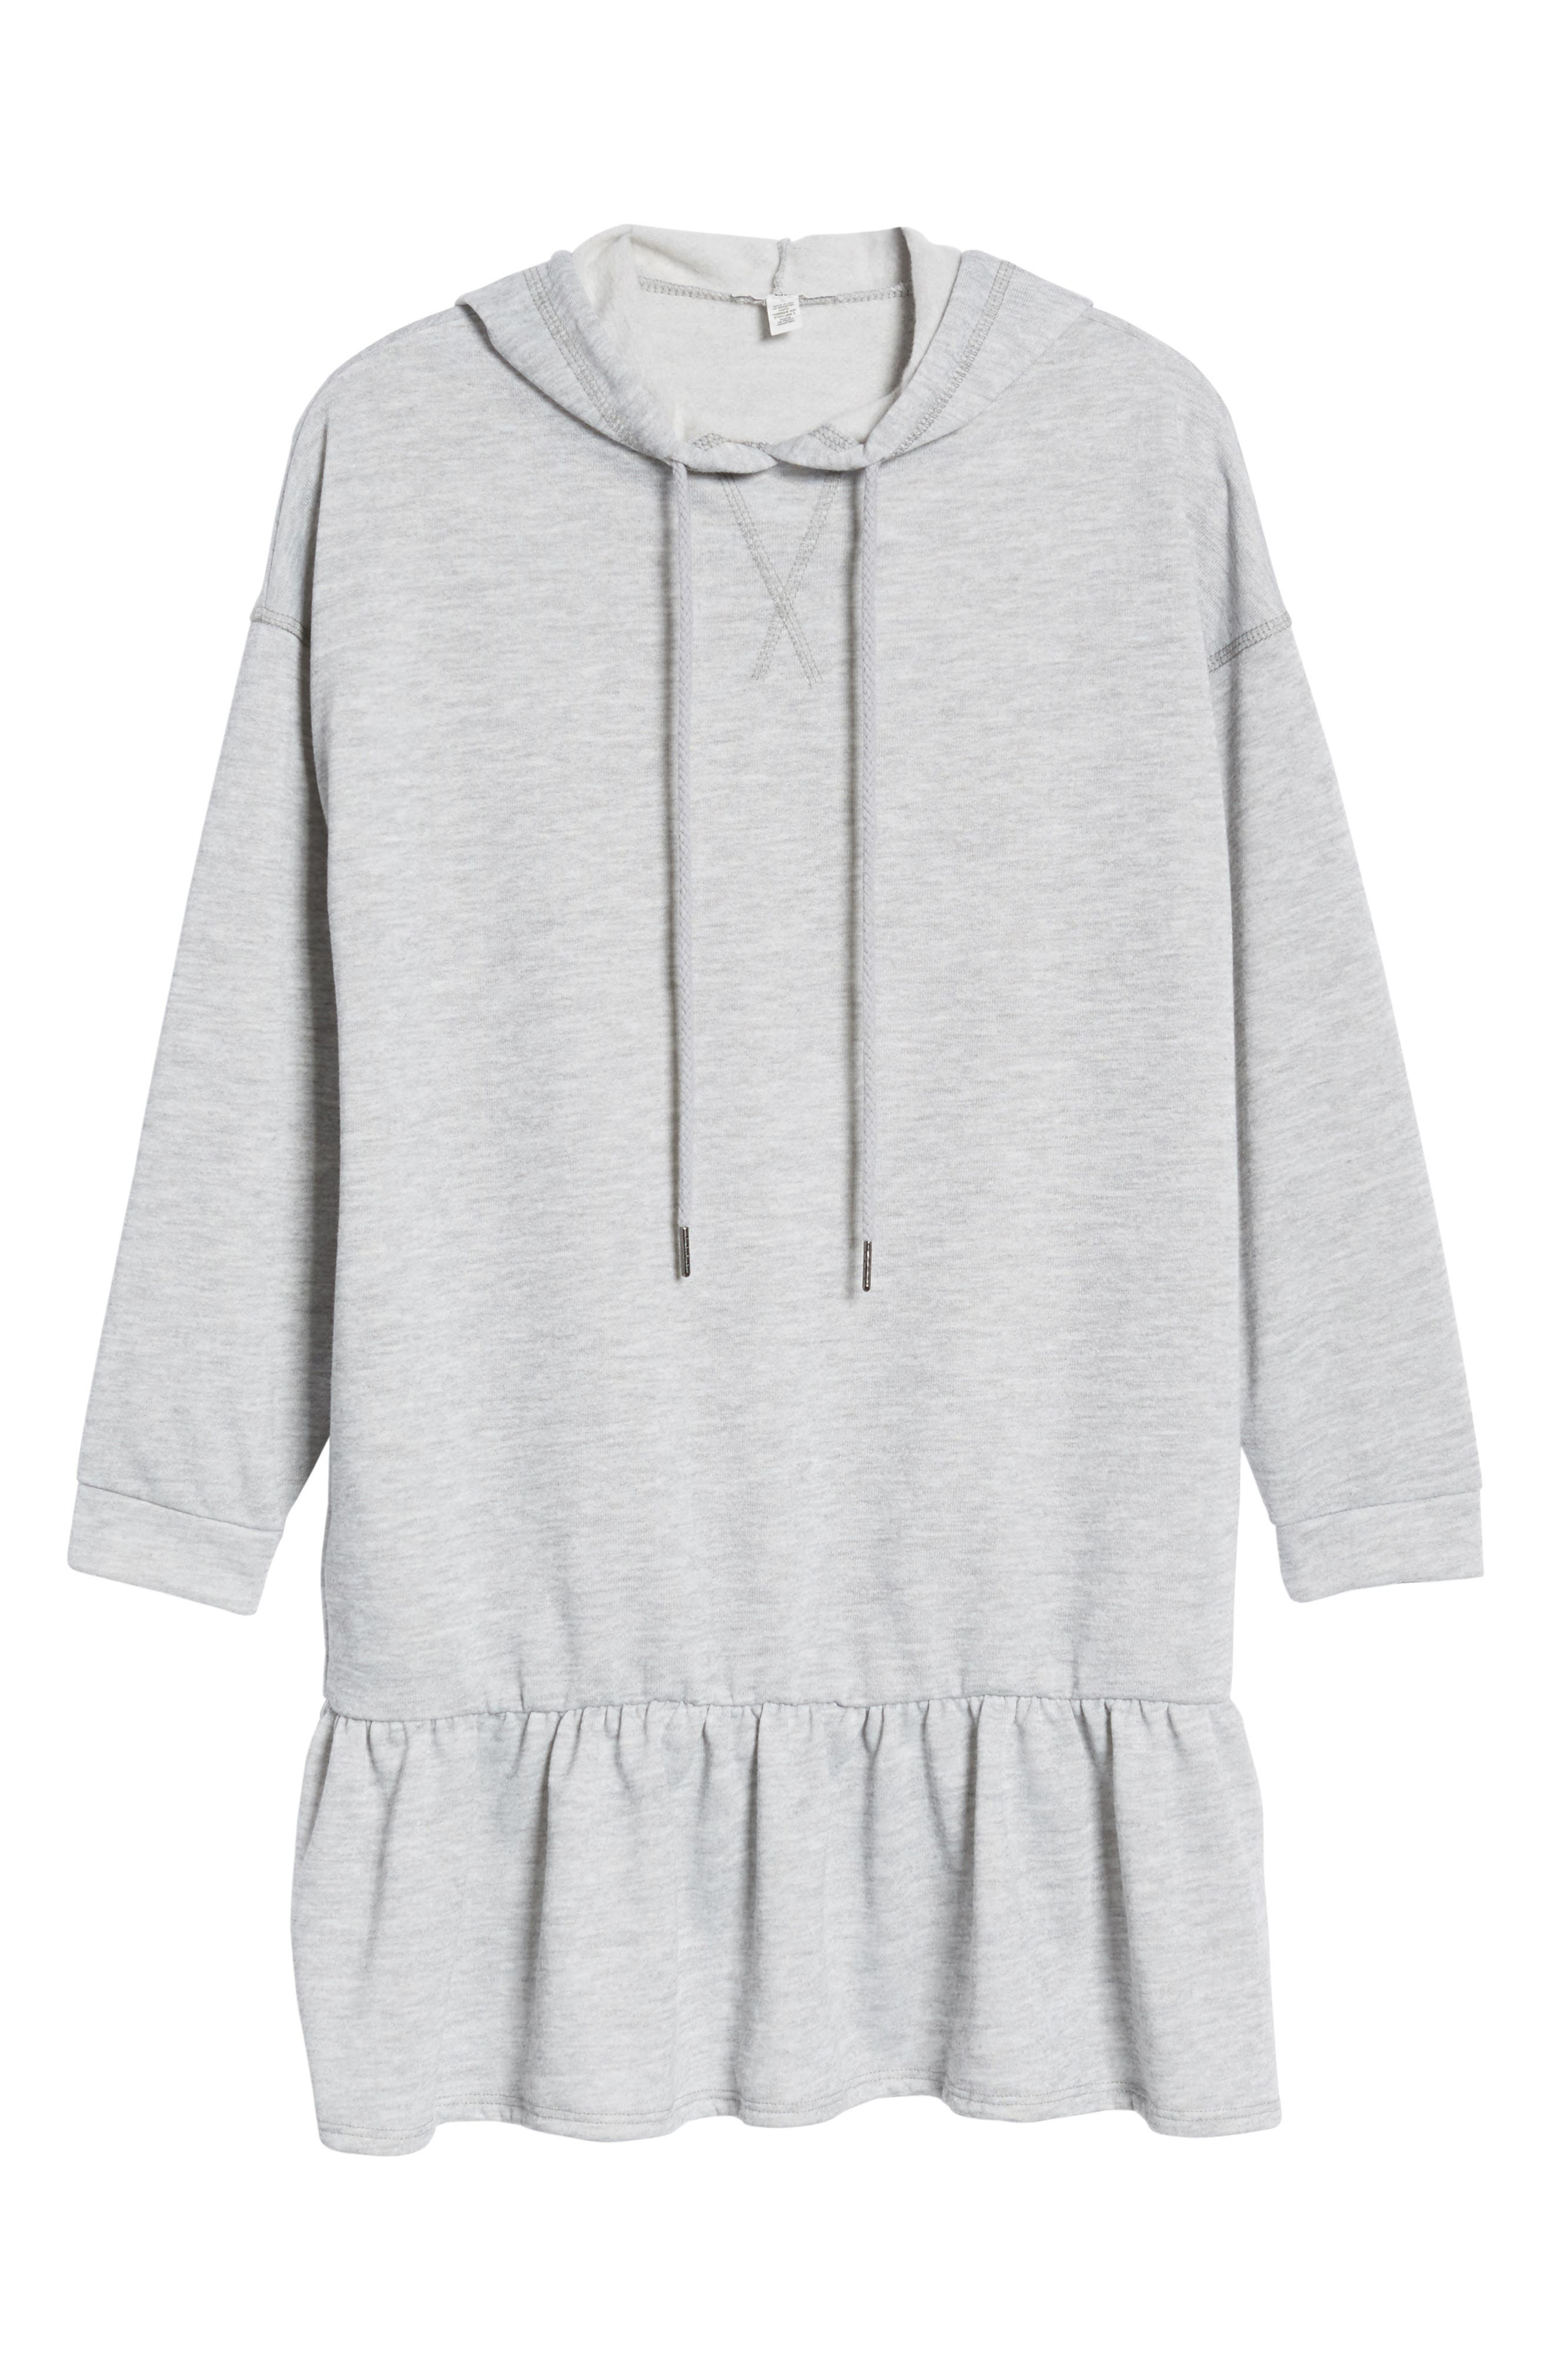 Drop Waist Sweatshirt Dress,                             Alternate thumbnail 6, color,                             030